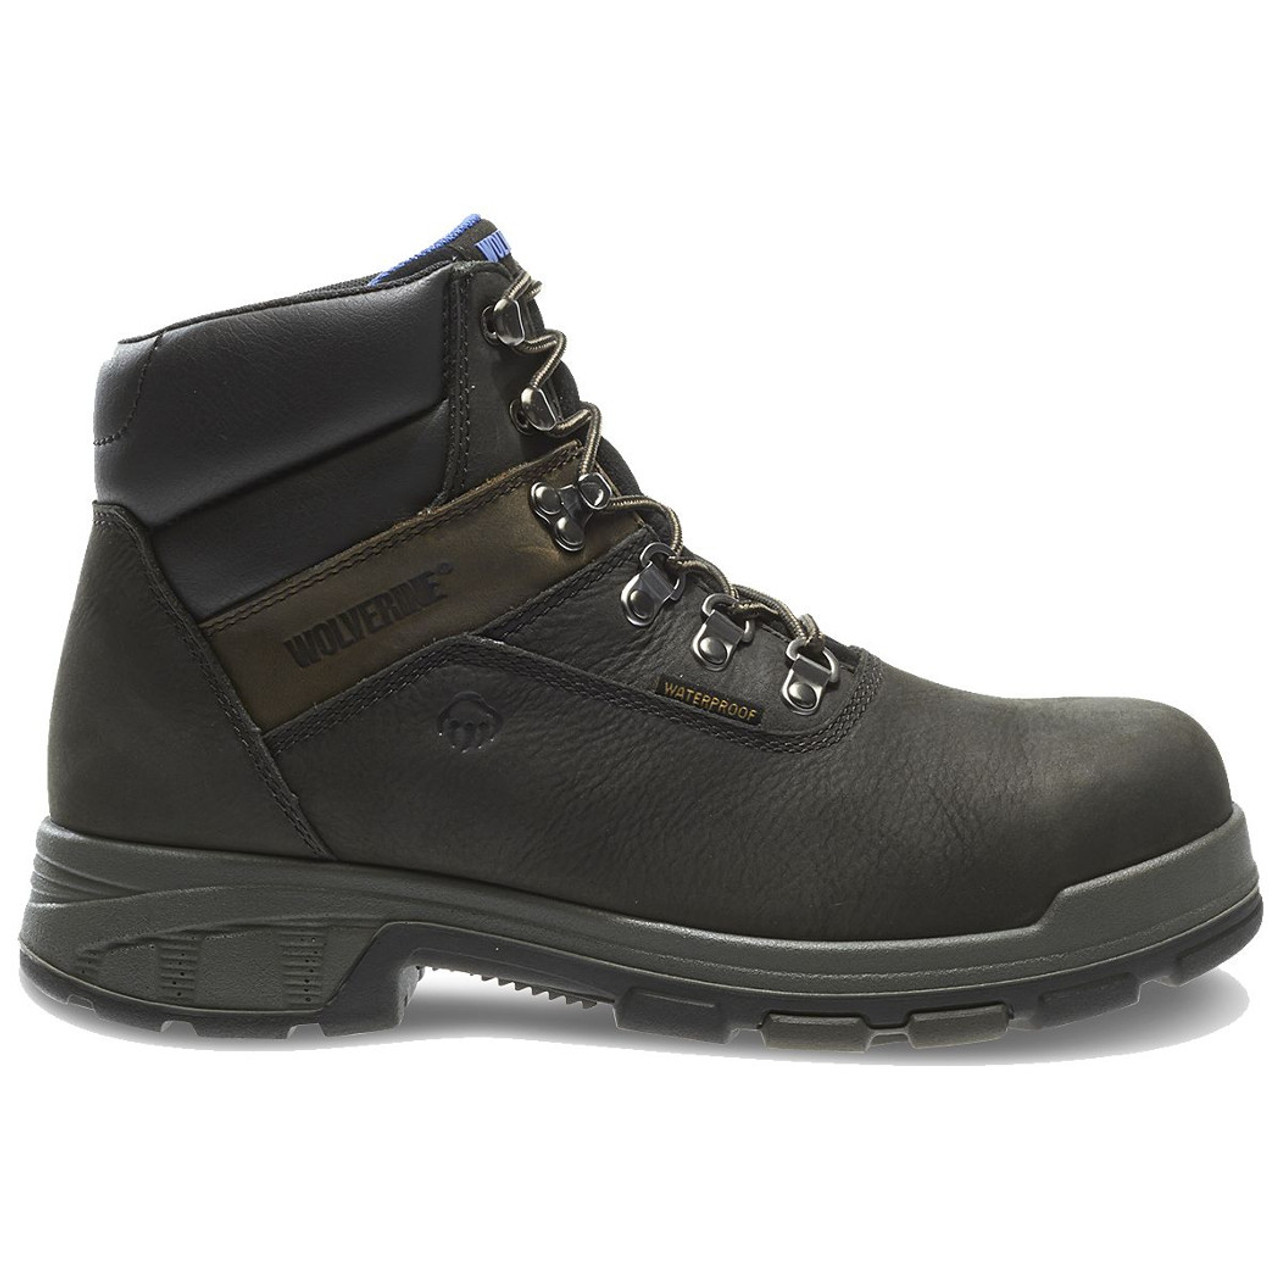 49cbba53f71 Wolverine W10326 Mens Cabor EPX Waterproof Composite Toe EH 6 Inch Boot